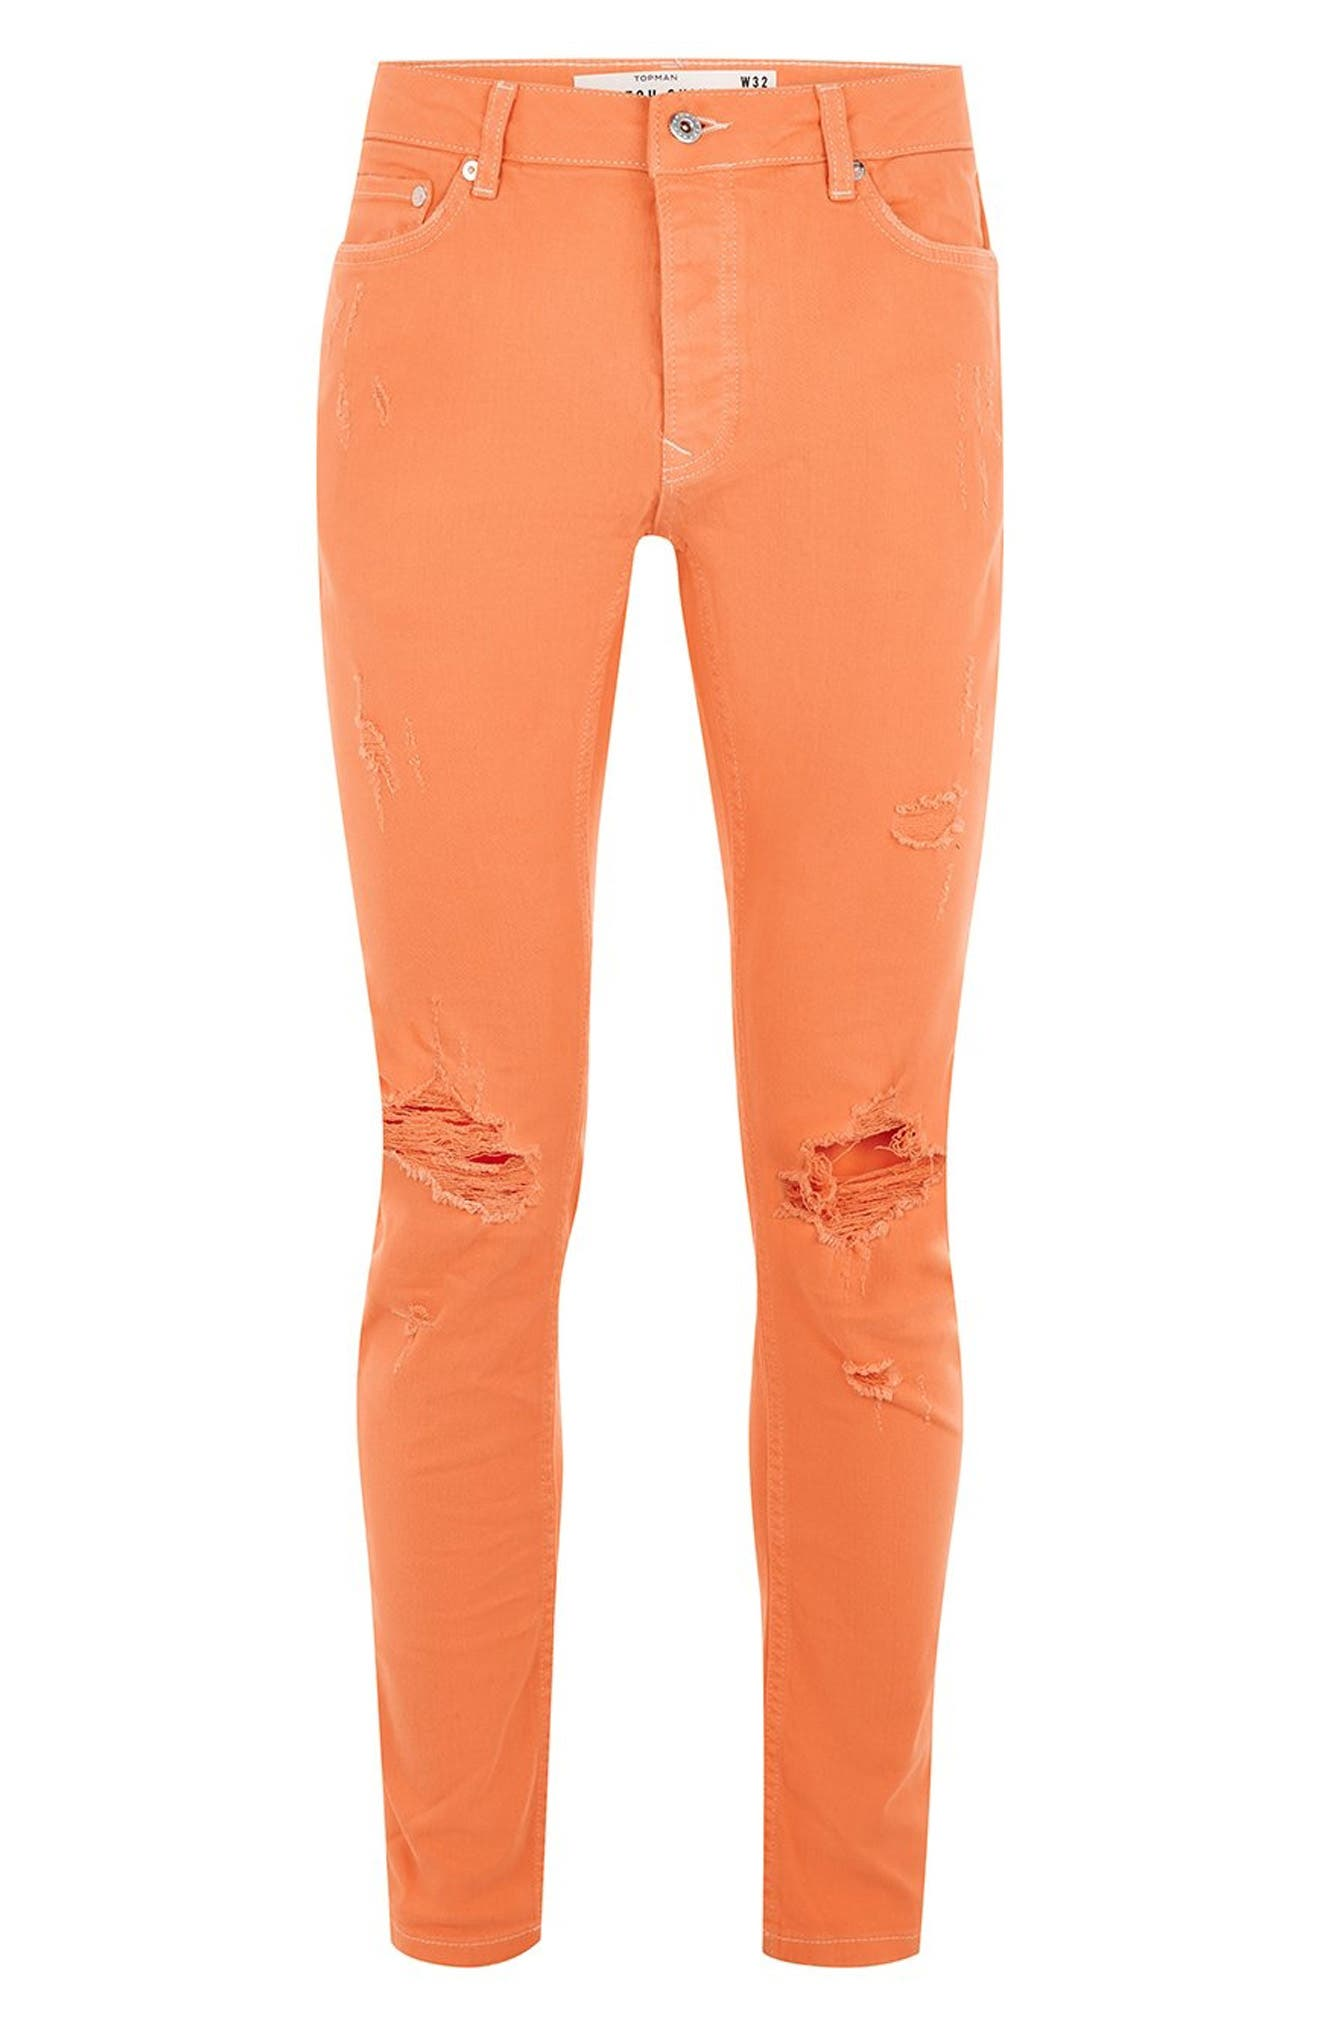 Ripped Skinny Fit Jeans,                             Alternate thumbnail 4, color,                             800